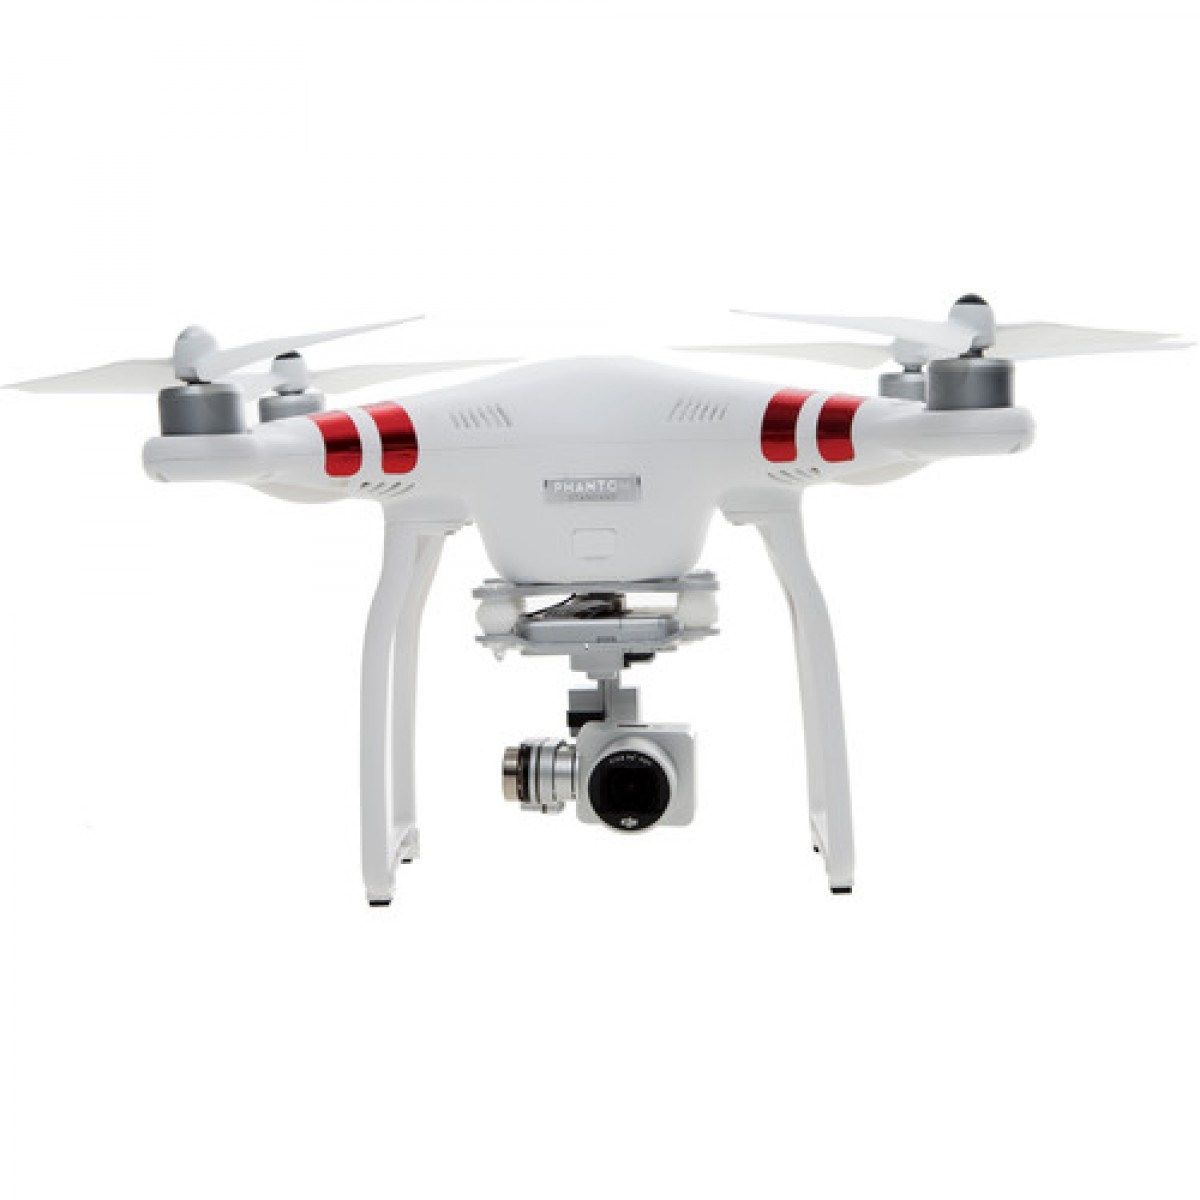 DJI Phantom 3 Standard with Spare Battery Bundle